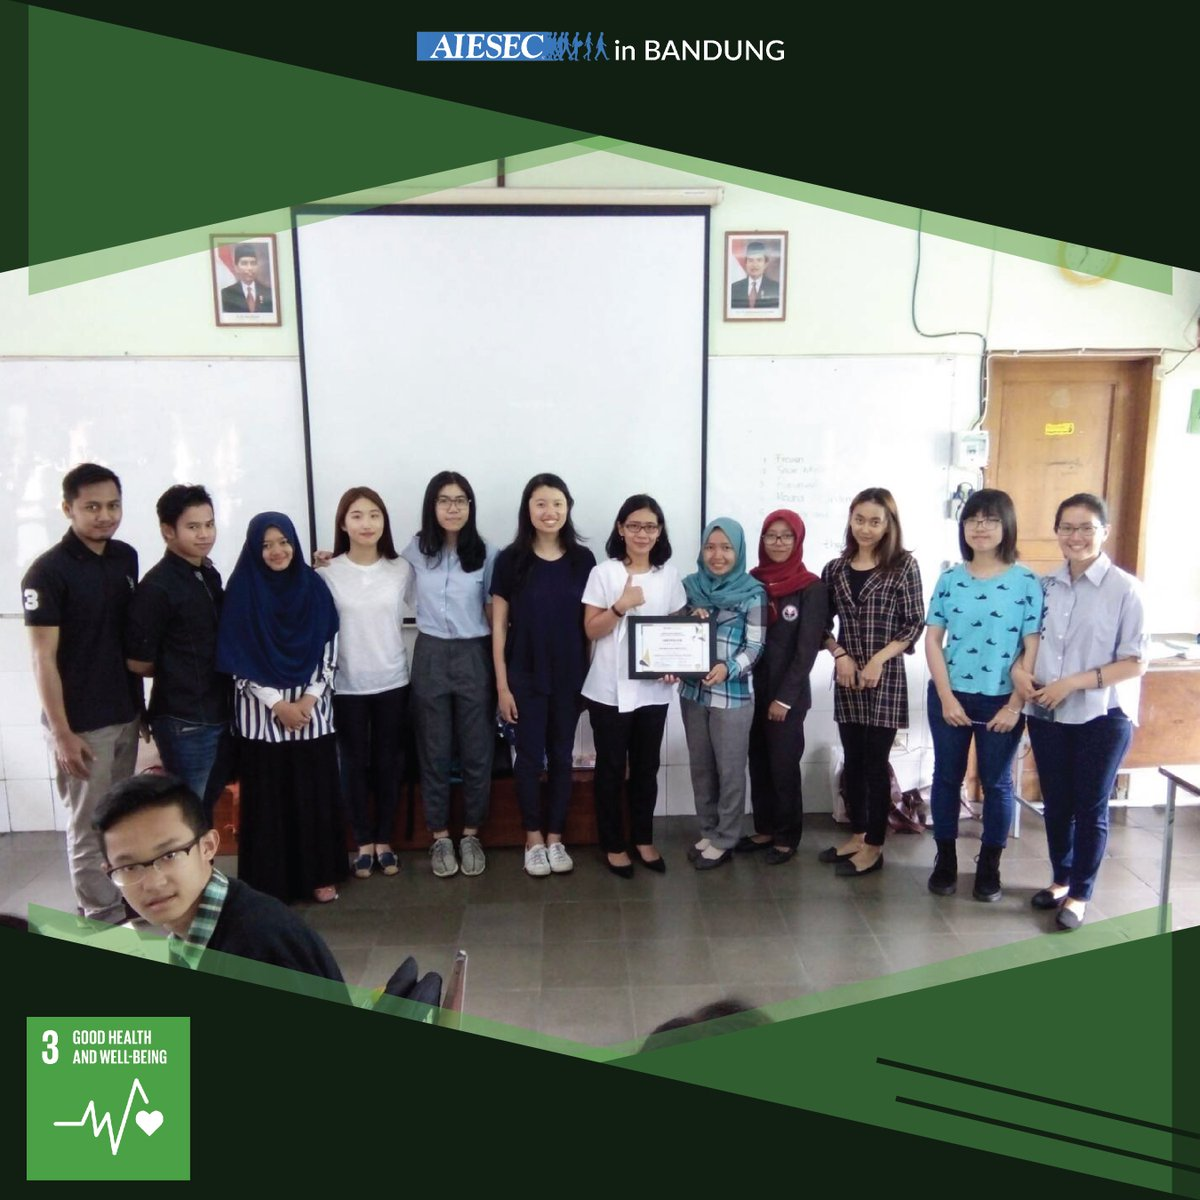 Our last Impacting Project 'Love for Cancer Kids' of AIESEC in Bandung with Rumah Cinta Anak Kanker (RCAK). https://t.co/3qI8dImobZ